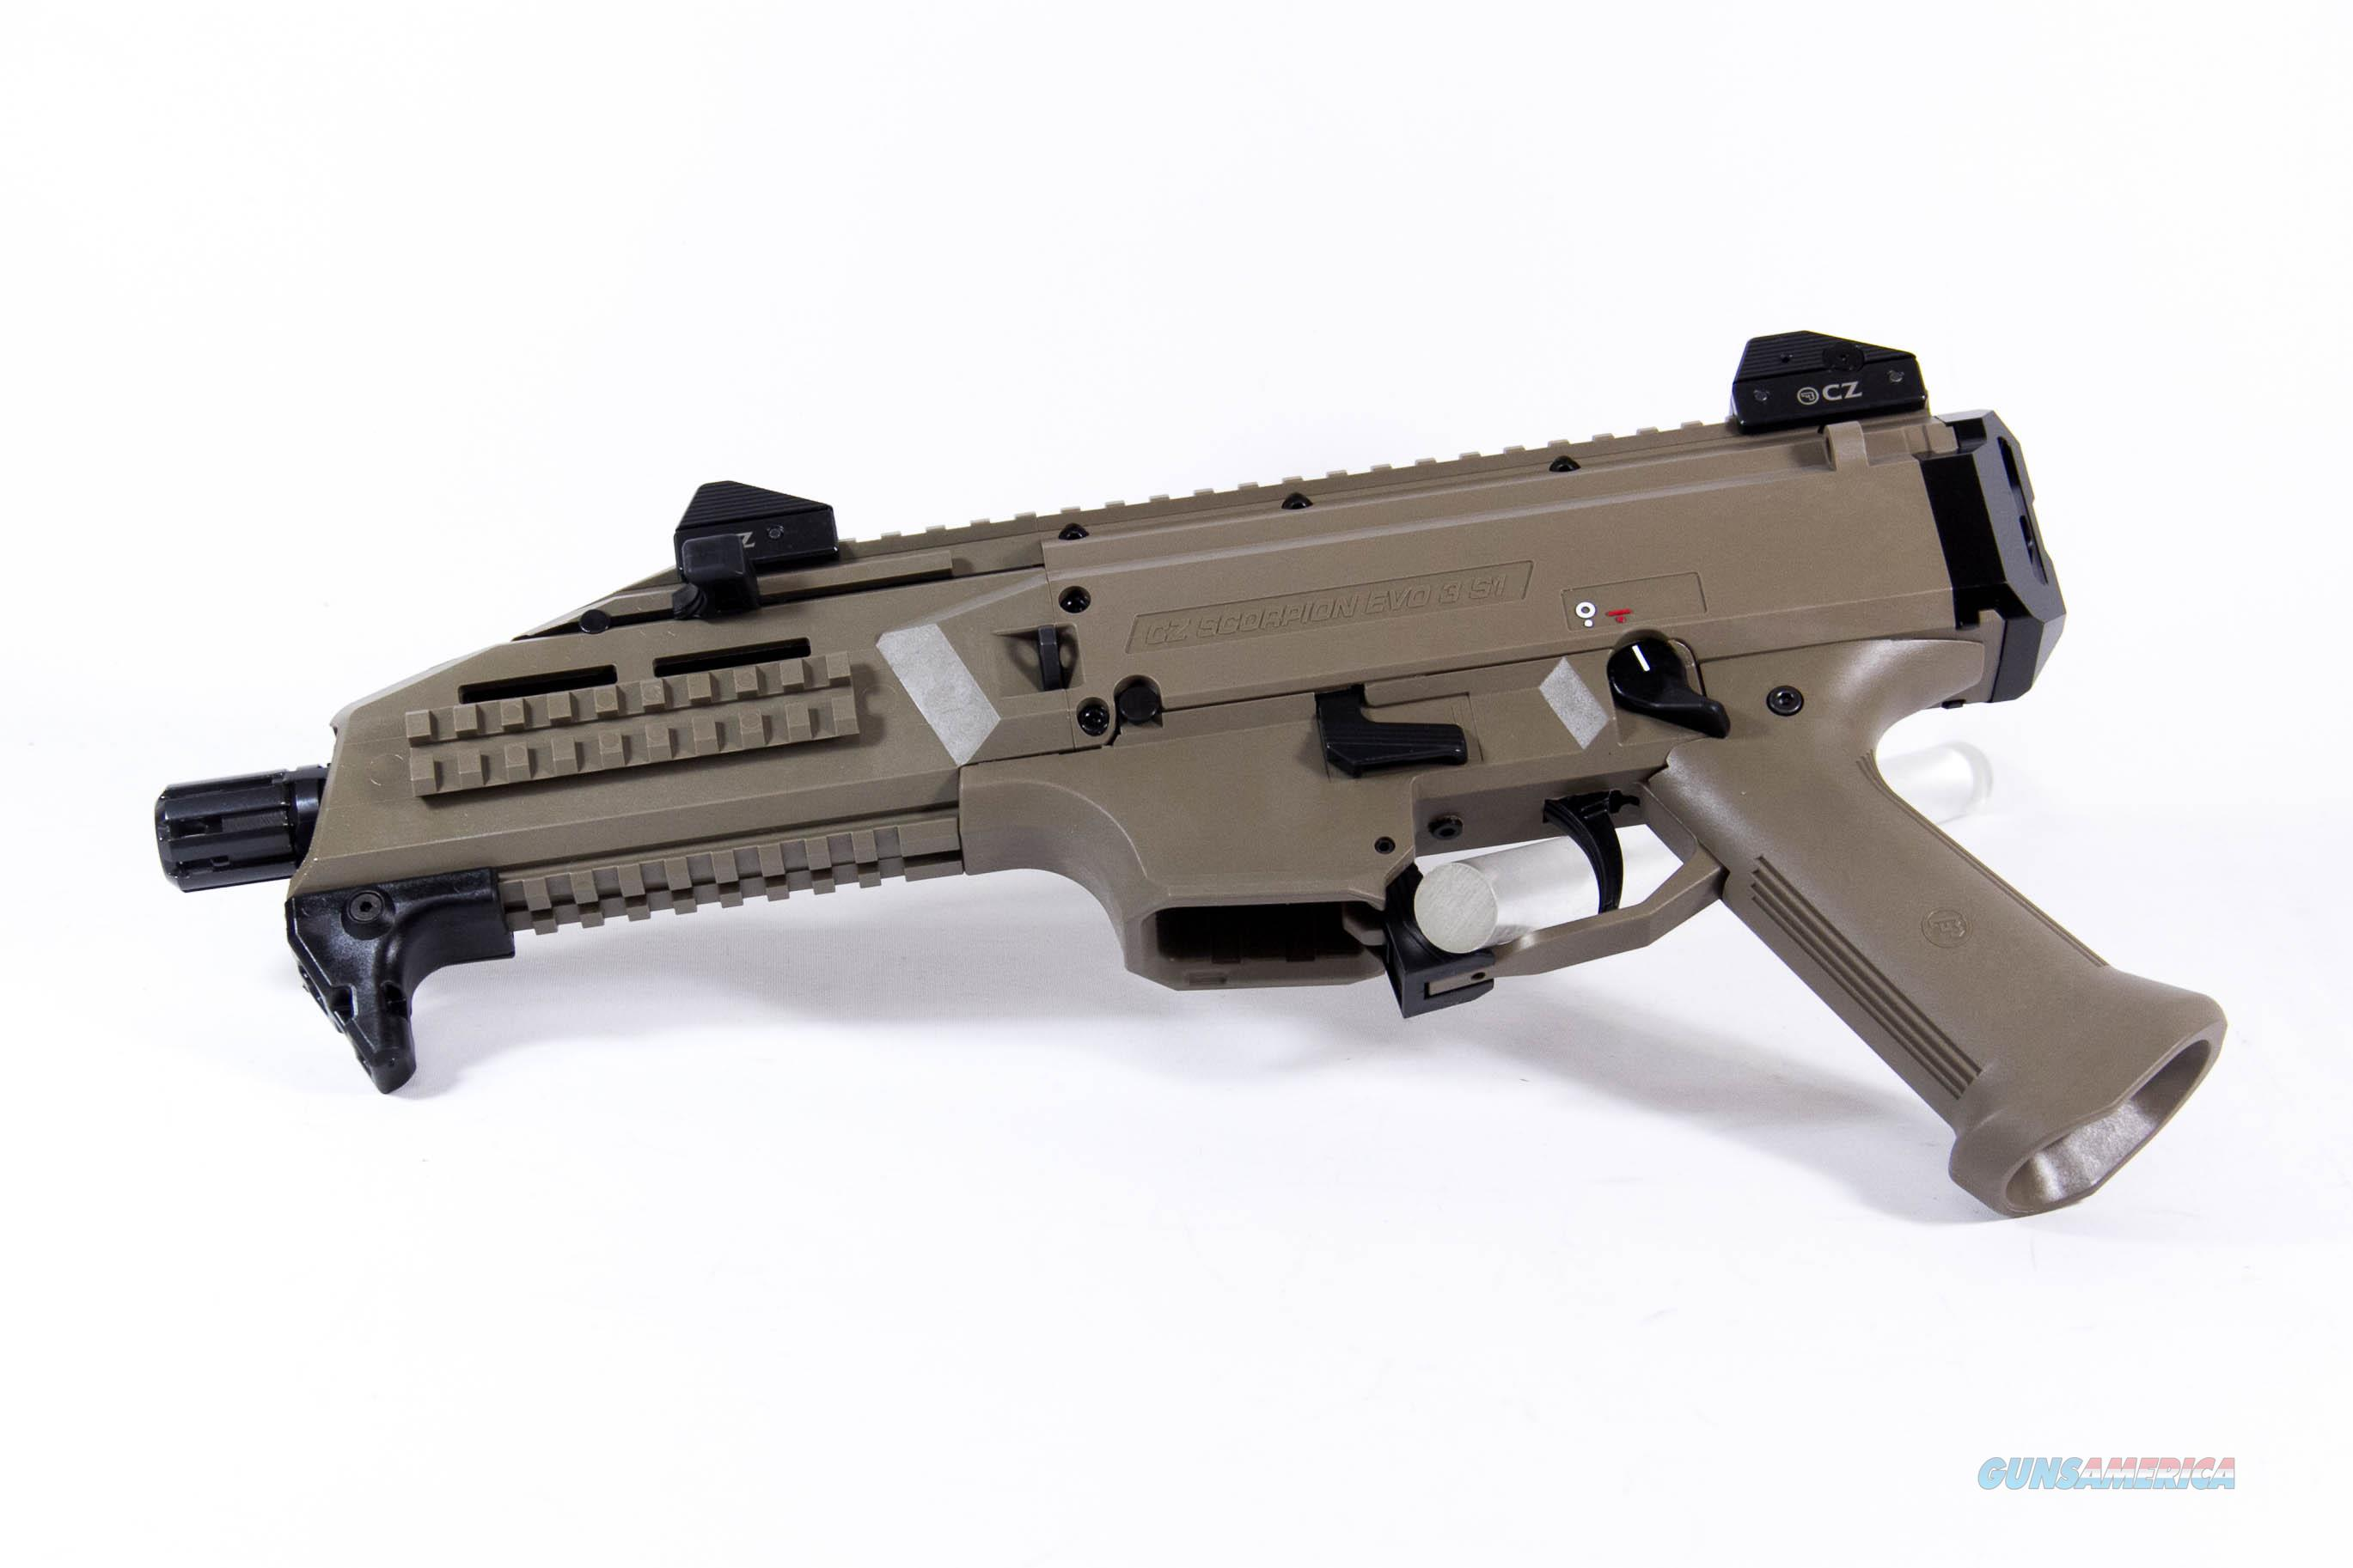 CZ Scorpion Evo 3 S1 Pistol, 9mm, Flat Dark Earth  Guns > Pistols > CZ Pistols